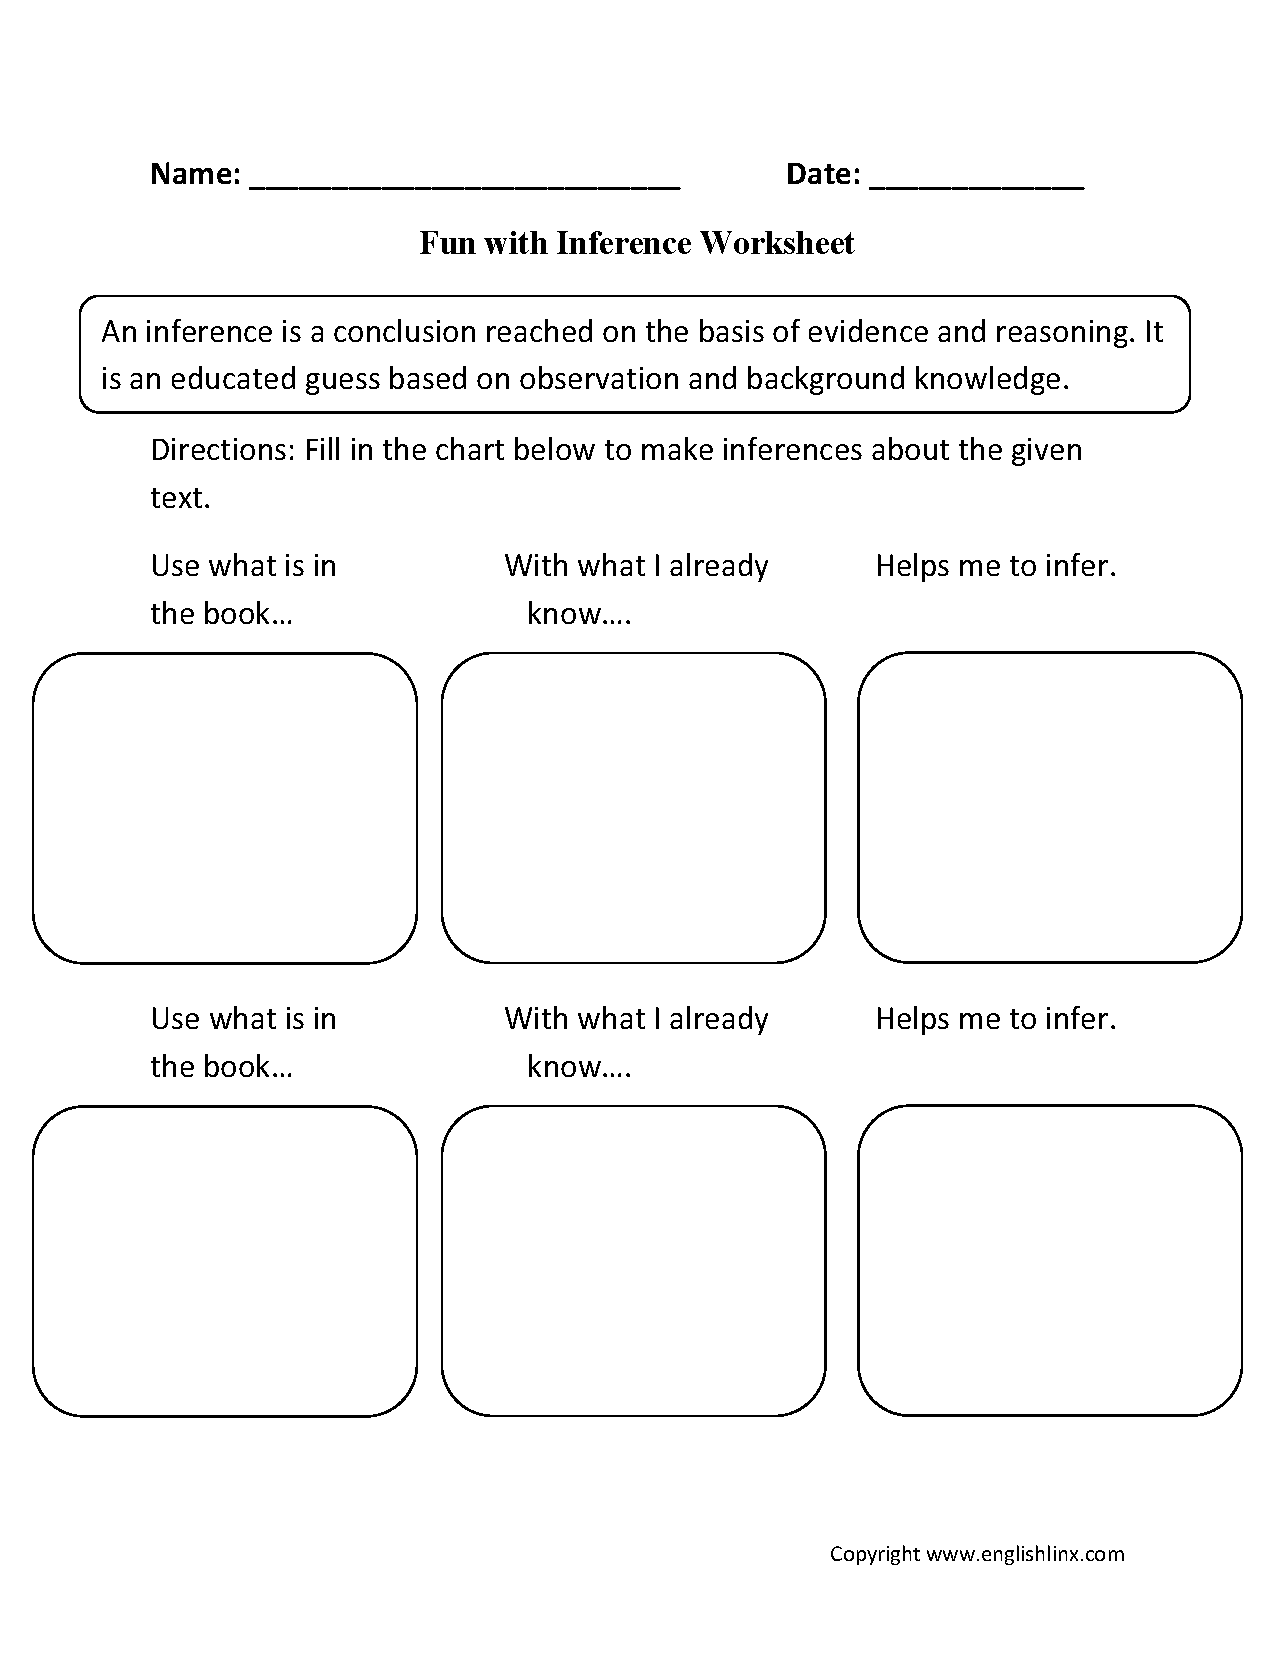 medium resolution of Reading Worksheets   Inference Worksheets   Reading worksheets